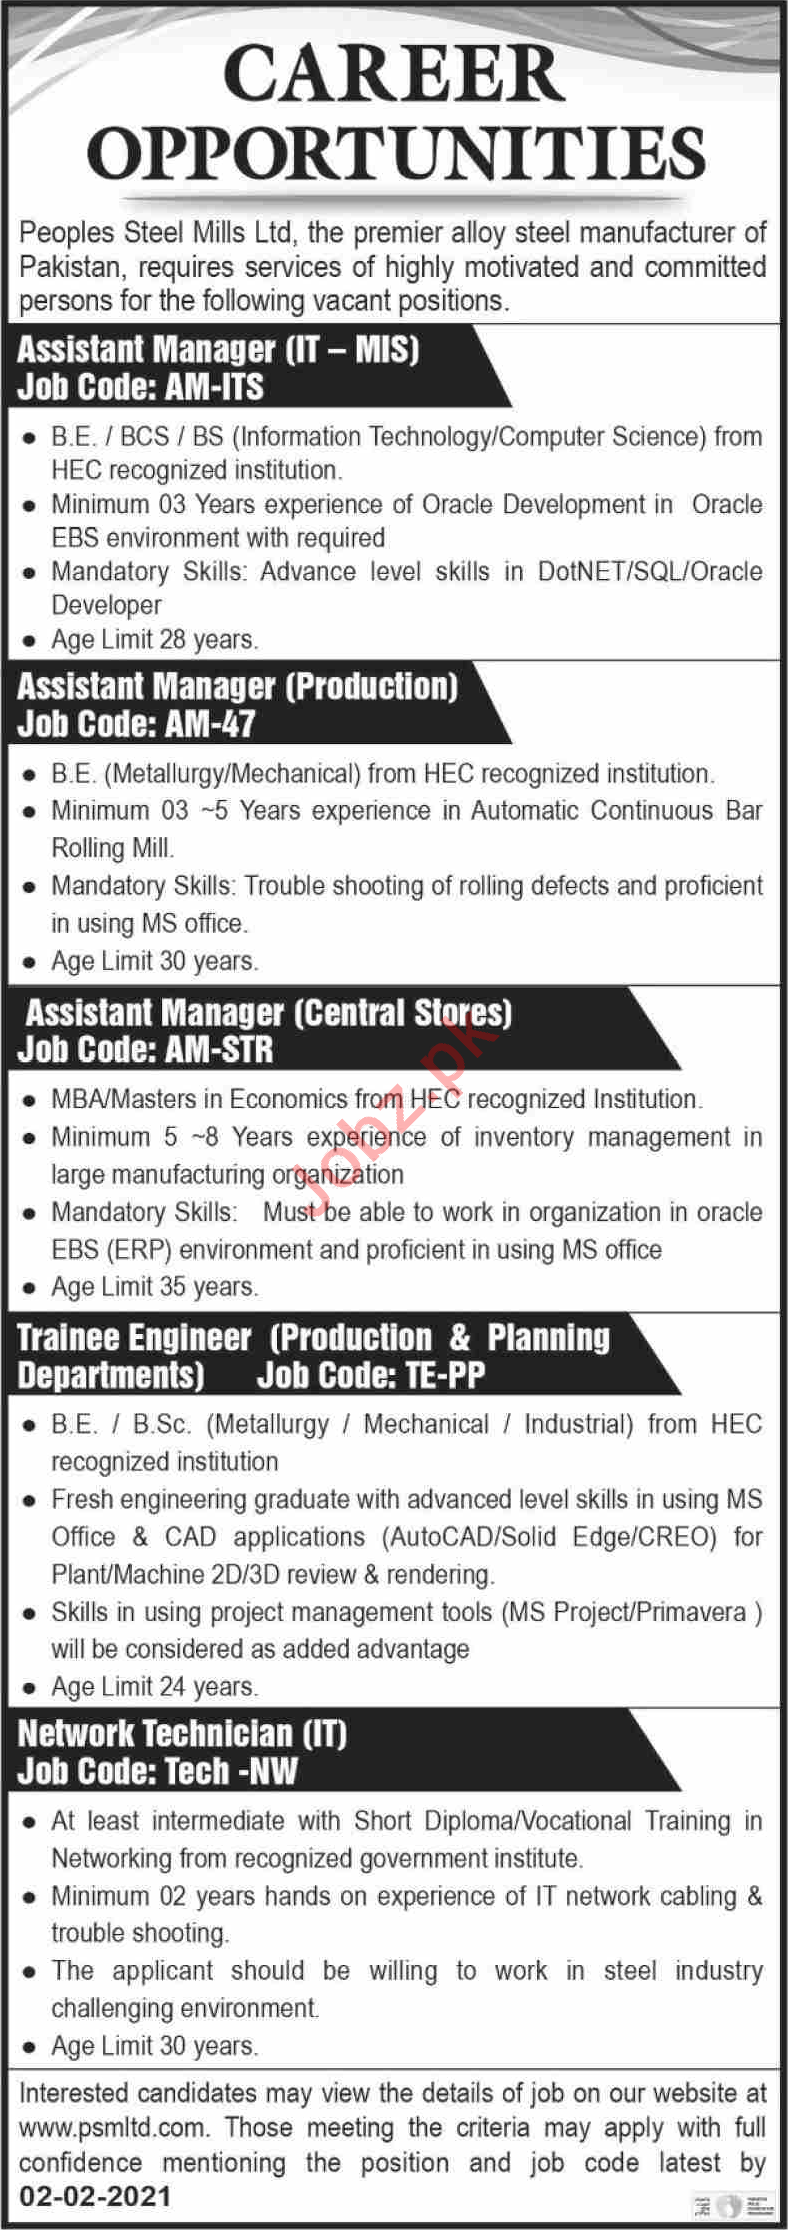 Management  Jobs in Peoples Steel Mills Limited